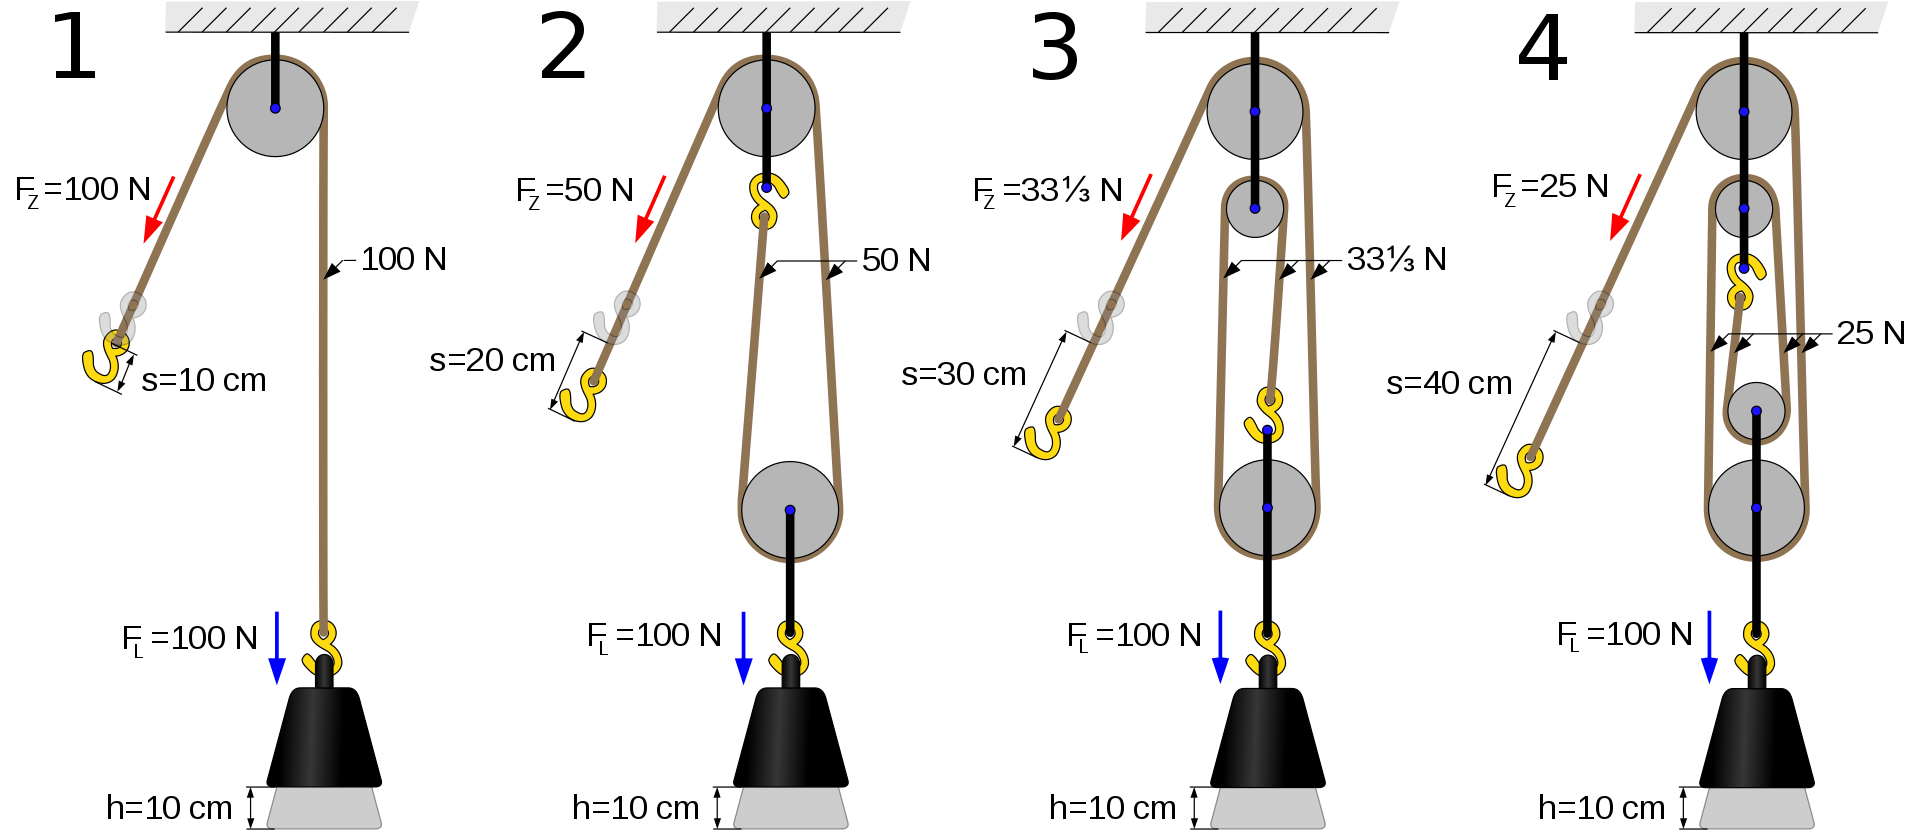 Examples of pulleys choice. Crane clipart movable pulley